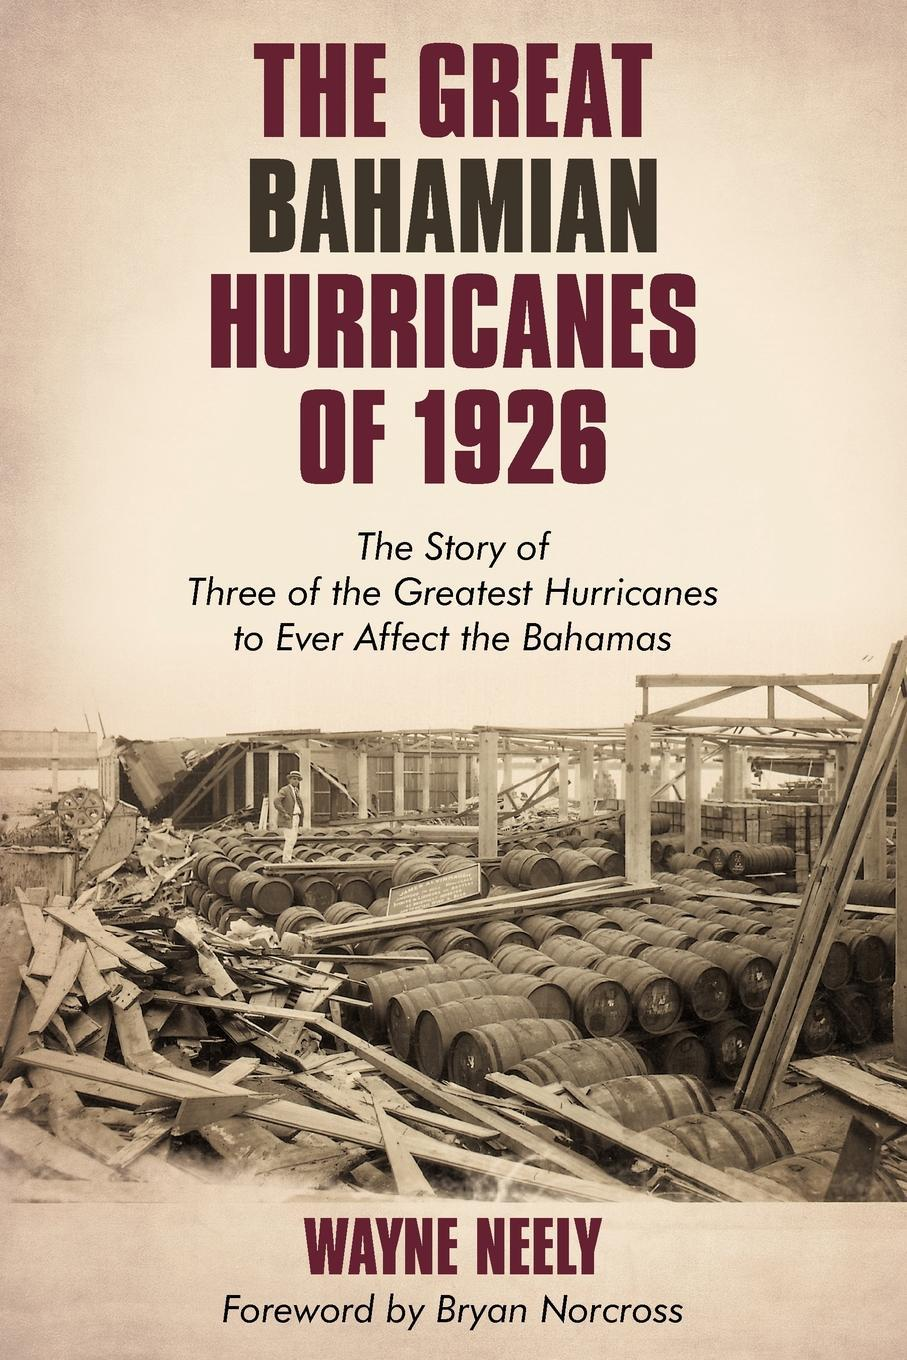 The Great Bahamian Hurricanes of 1926: The Story of Three of the Greatest Hurricanes to Ever Affect the Bahamas EB9781440151767